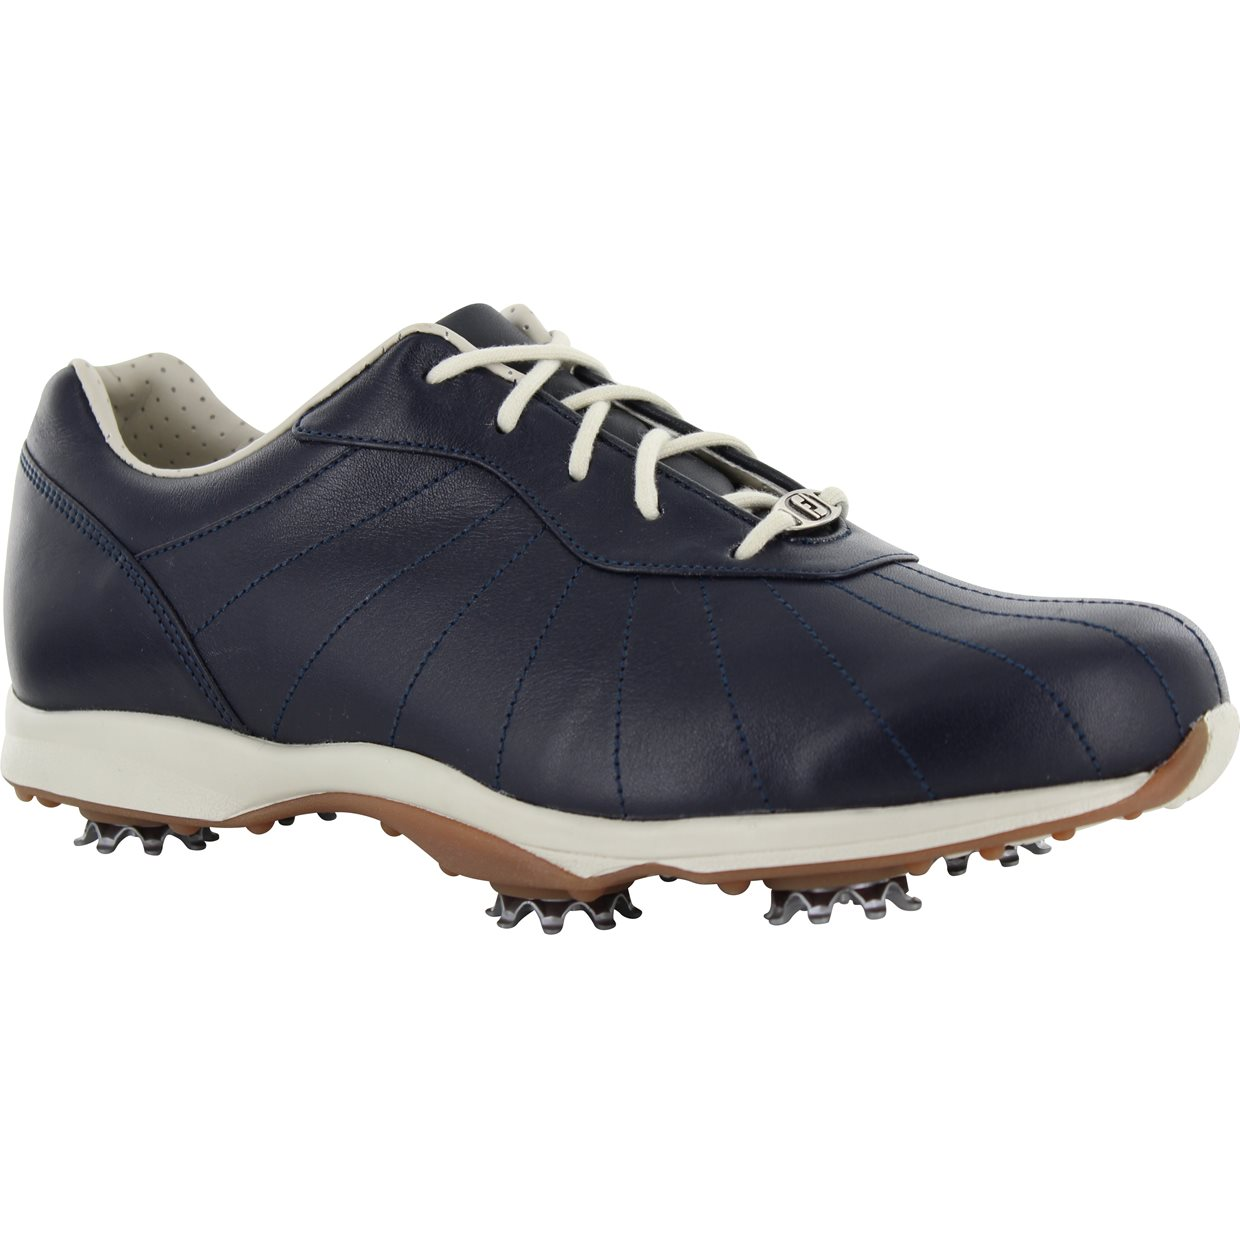 Footjoy Golf Shoes Size  Wide